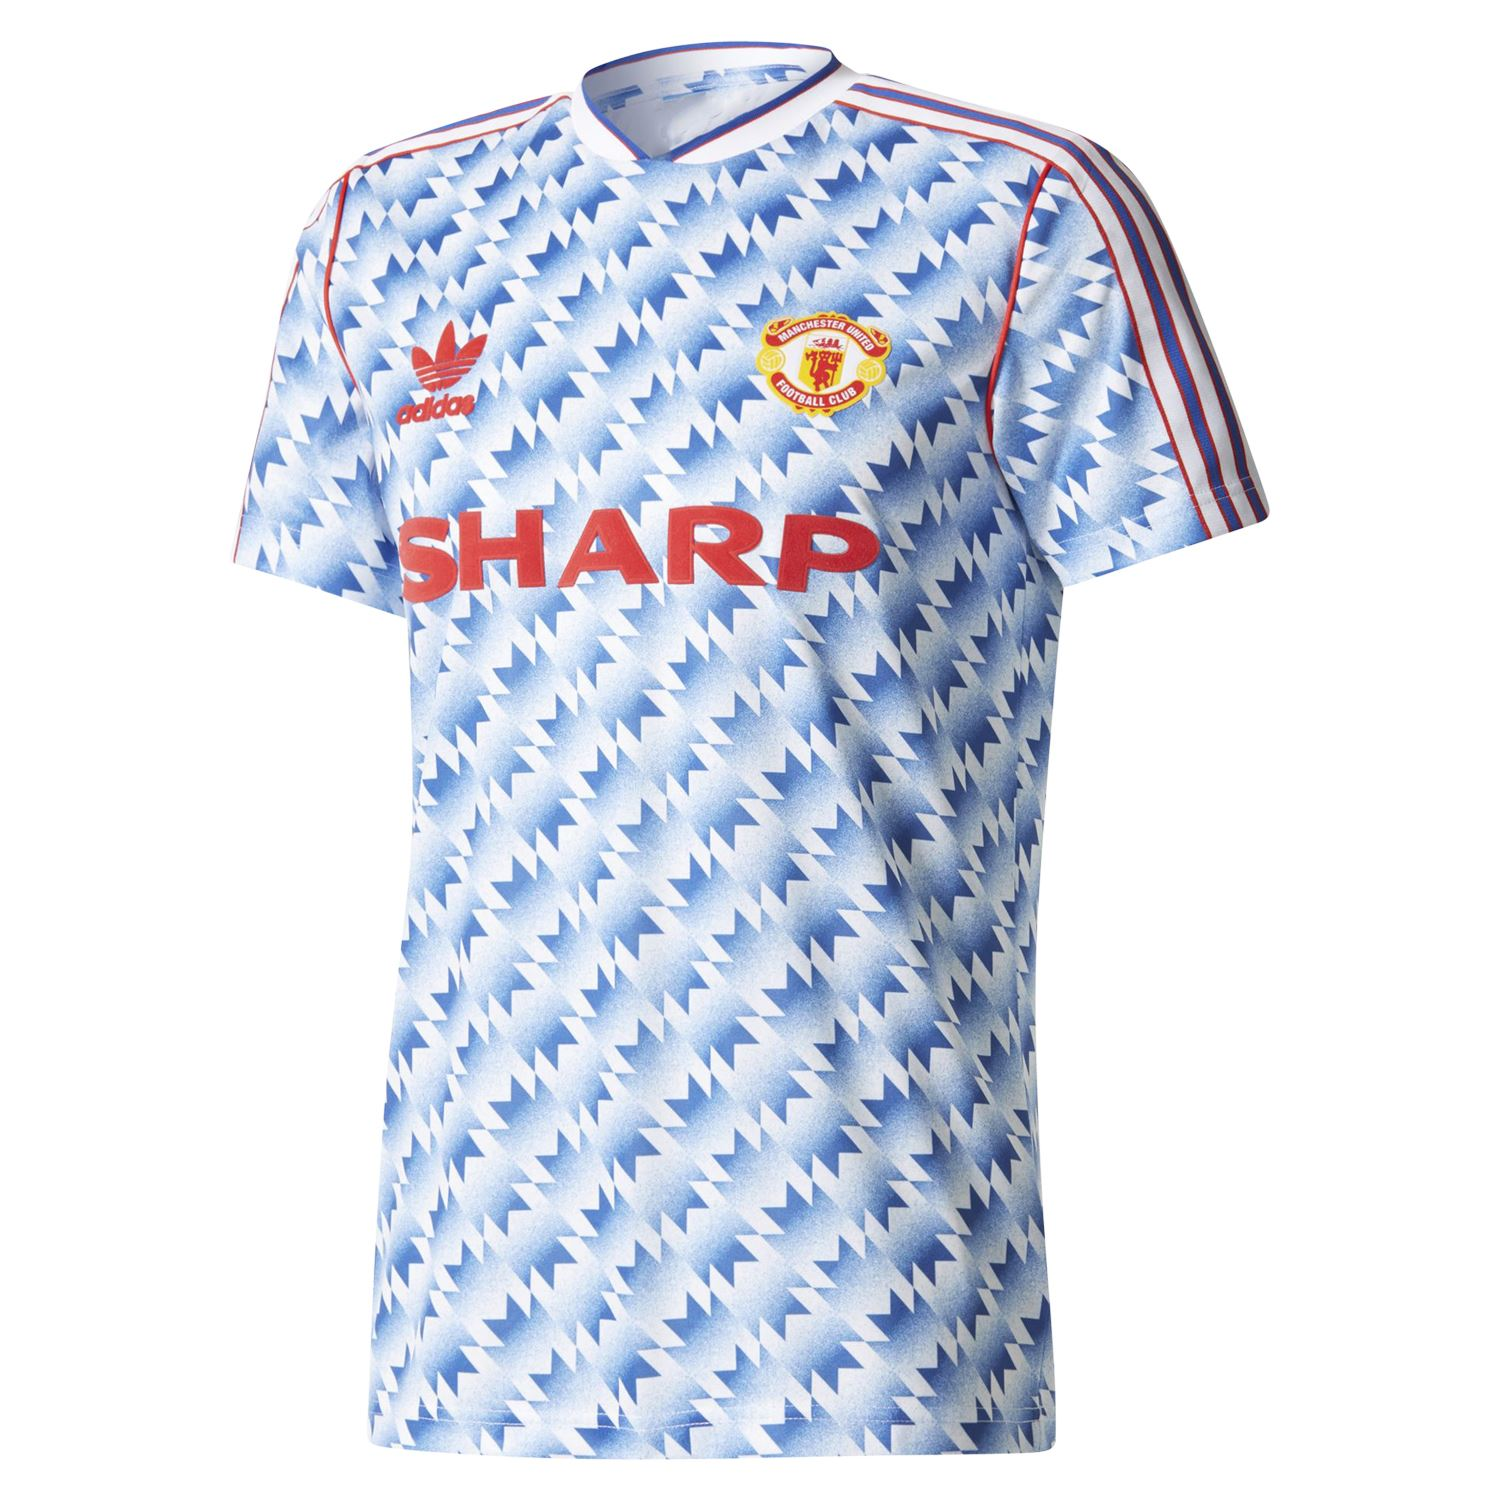 9d5e940b6b6 Buy Retro Man Utd Shirts – EDGE Engineering and Consulting Limited